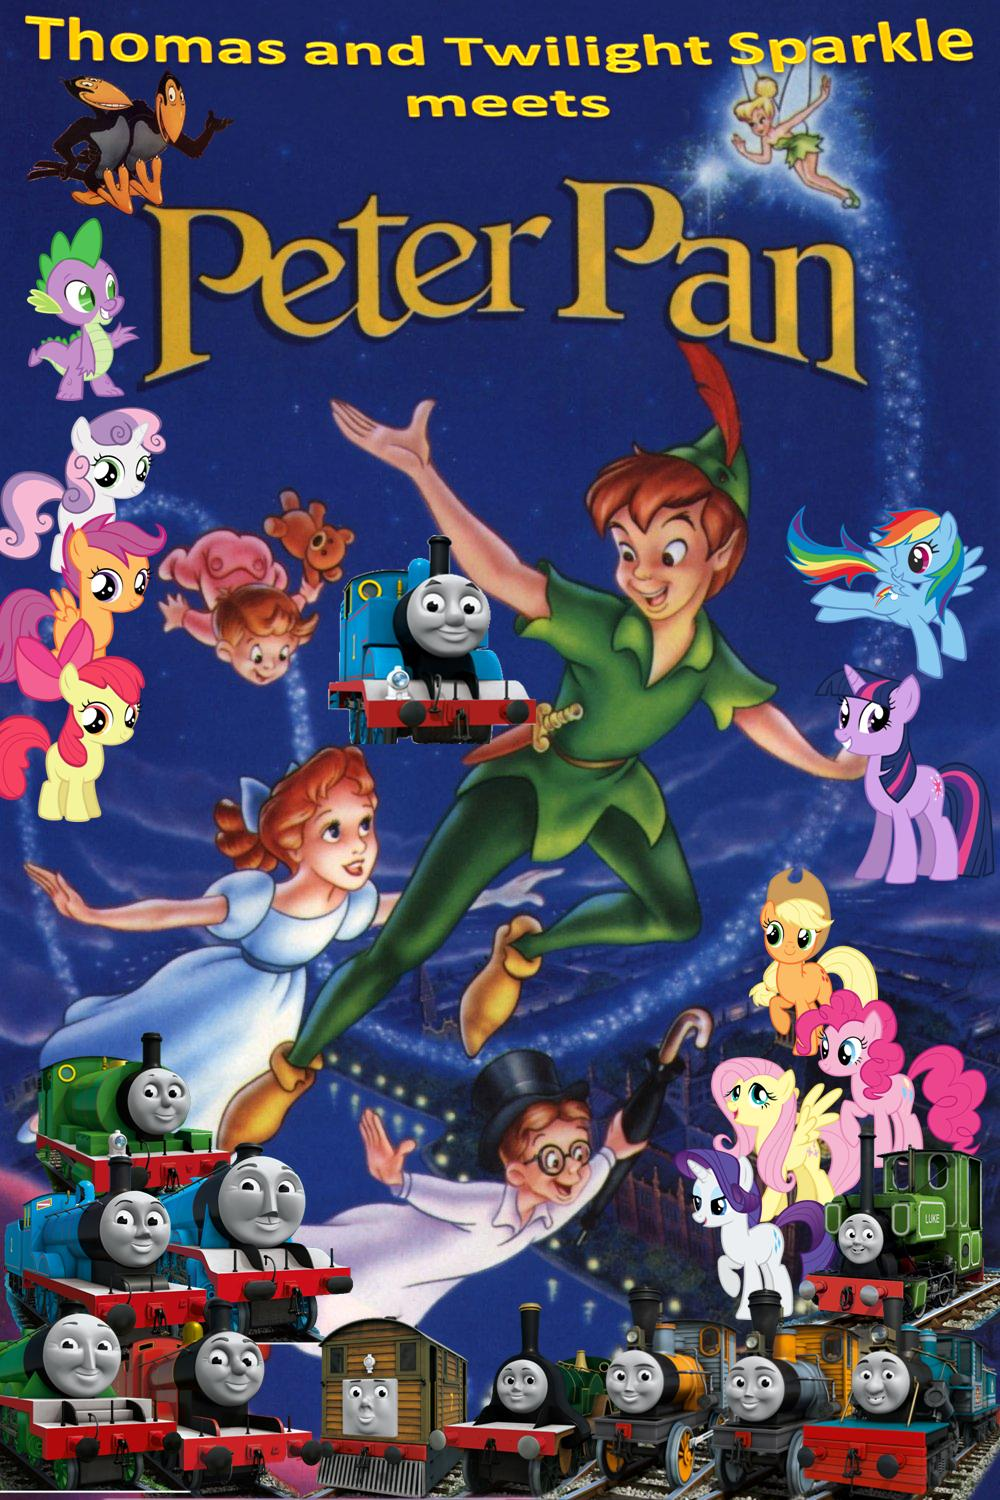 Thomas And Twilight Sparkle Meets Peter Pan Kerasotes Wiki